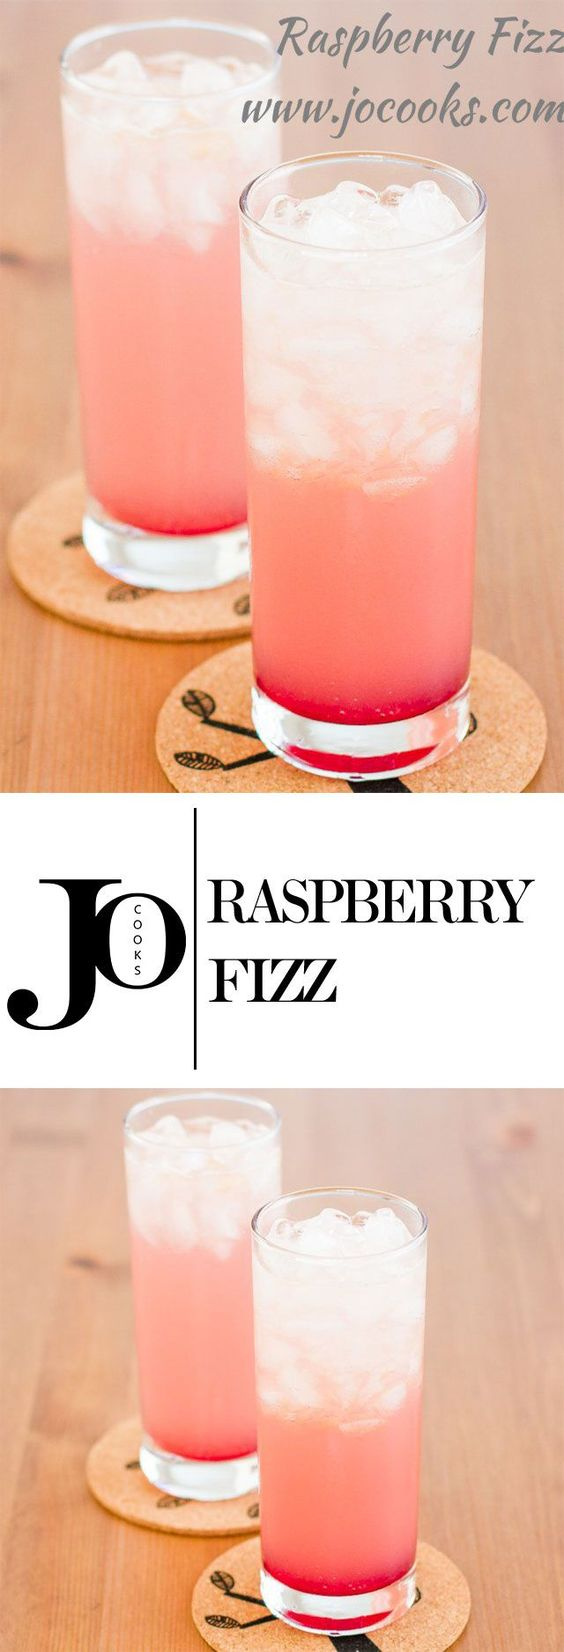 Raspberry Fizz Alcohol Free Party Drinks Recipe via Jo Cooks – a perfect refreshing non alcoholic beverage to quench your summer thirst. 4 simple ingredients for this great kid friendly drink. The BEST Easy Non-Alcoholic Drinks Recipes - Creative Mocktails and Family Friendly, Alcohol-Free, Big Batch Party Beverages for a Crowd! #mocktails #virgindrinks #alcoholfreedrinks #nonalcoholicdrinks #familyfriendlydrinks #partypunch #partydrinks #newyearseve #partydrinkrecipes